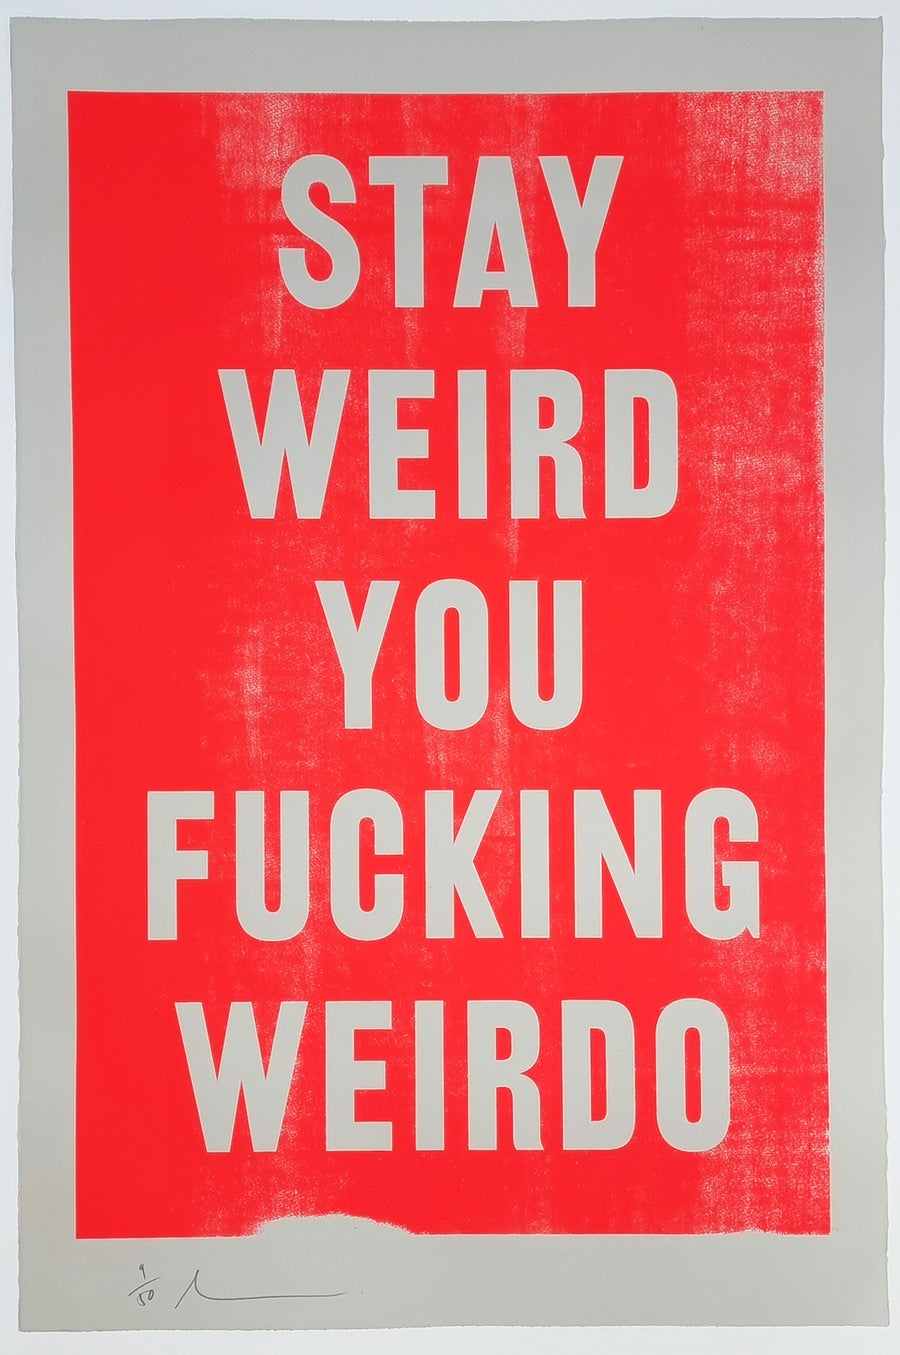 Image of STAY WEIRD YOU FUCKING WEIRDO by Real Hackney Dave (Harley pulled edition)